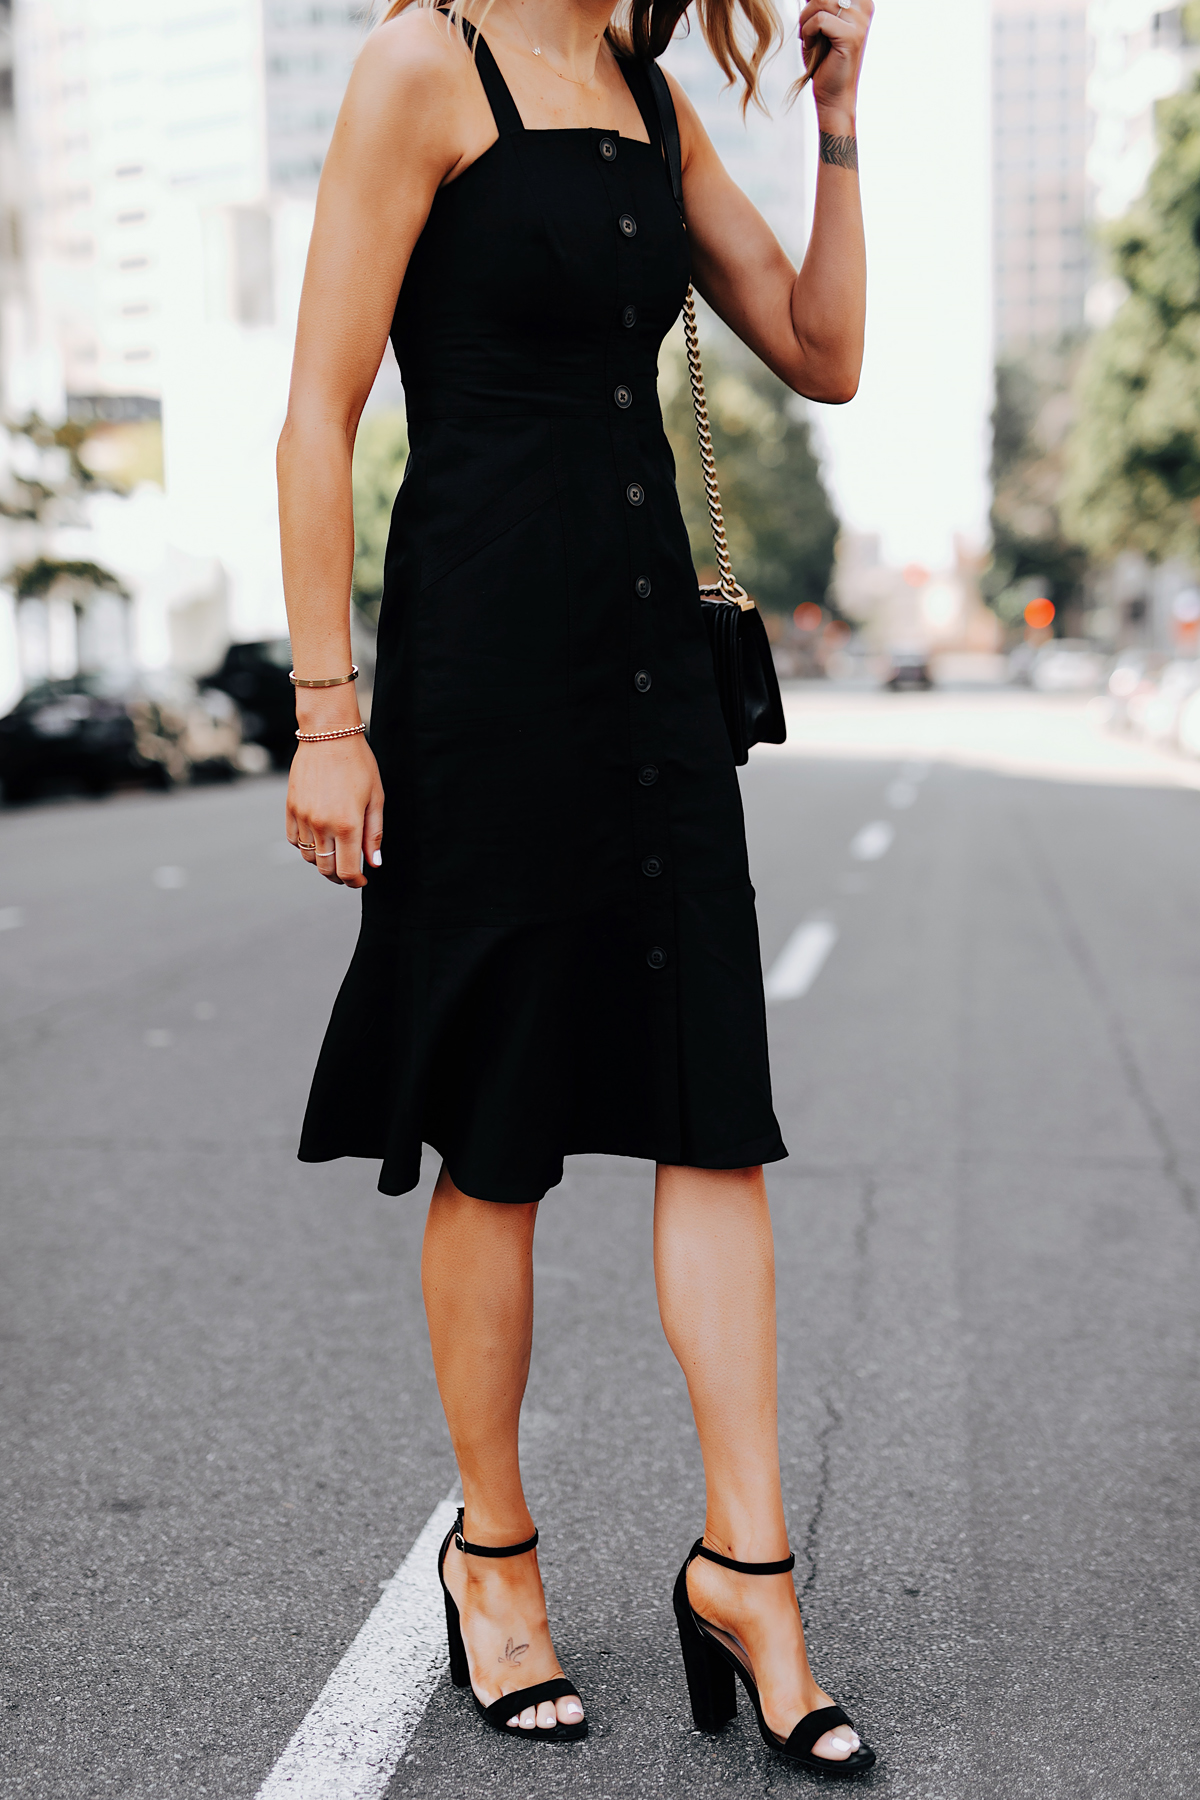 Fashion Jackson Wearing Banana Republic Black Button Front Tank Dress Black Ankle Strap Heeled Sandals